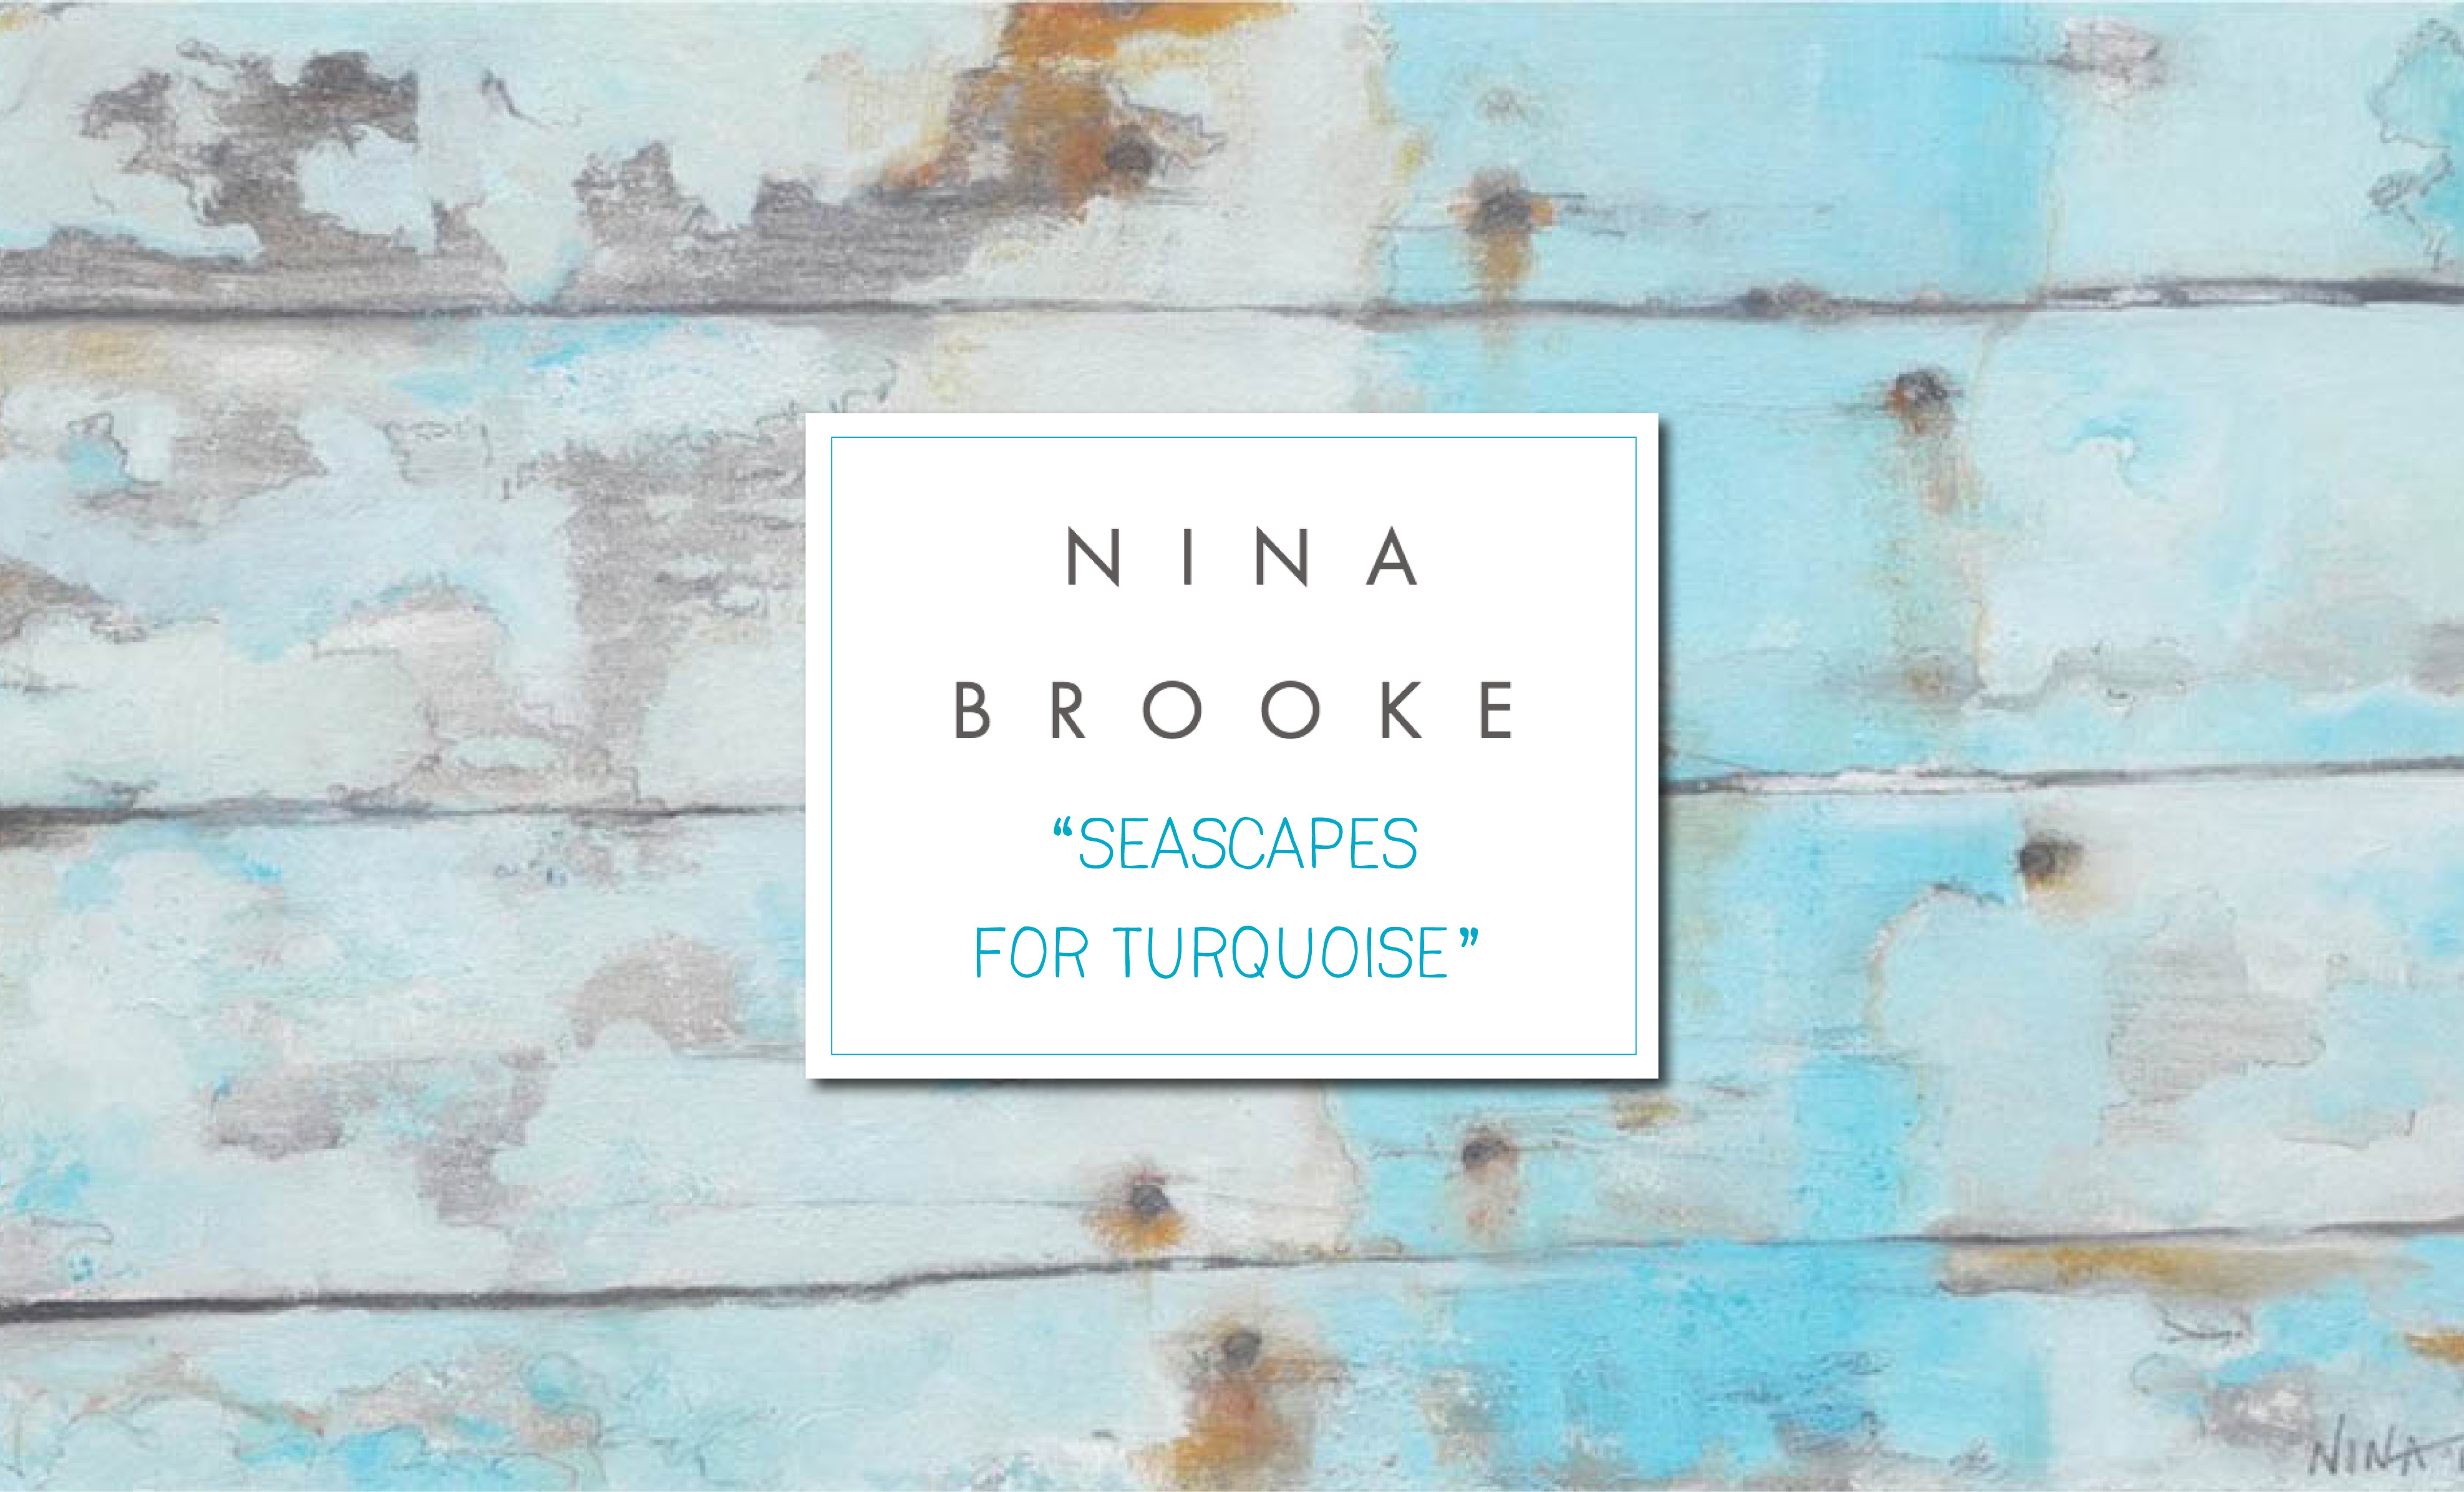 nina brooke seascapes for turquoise london art exhibition pop up